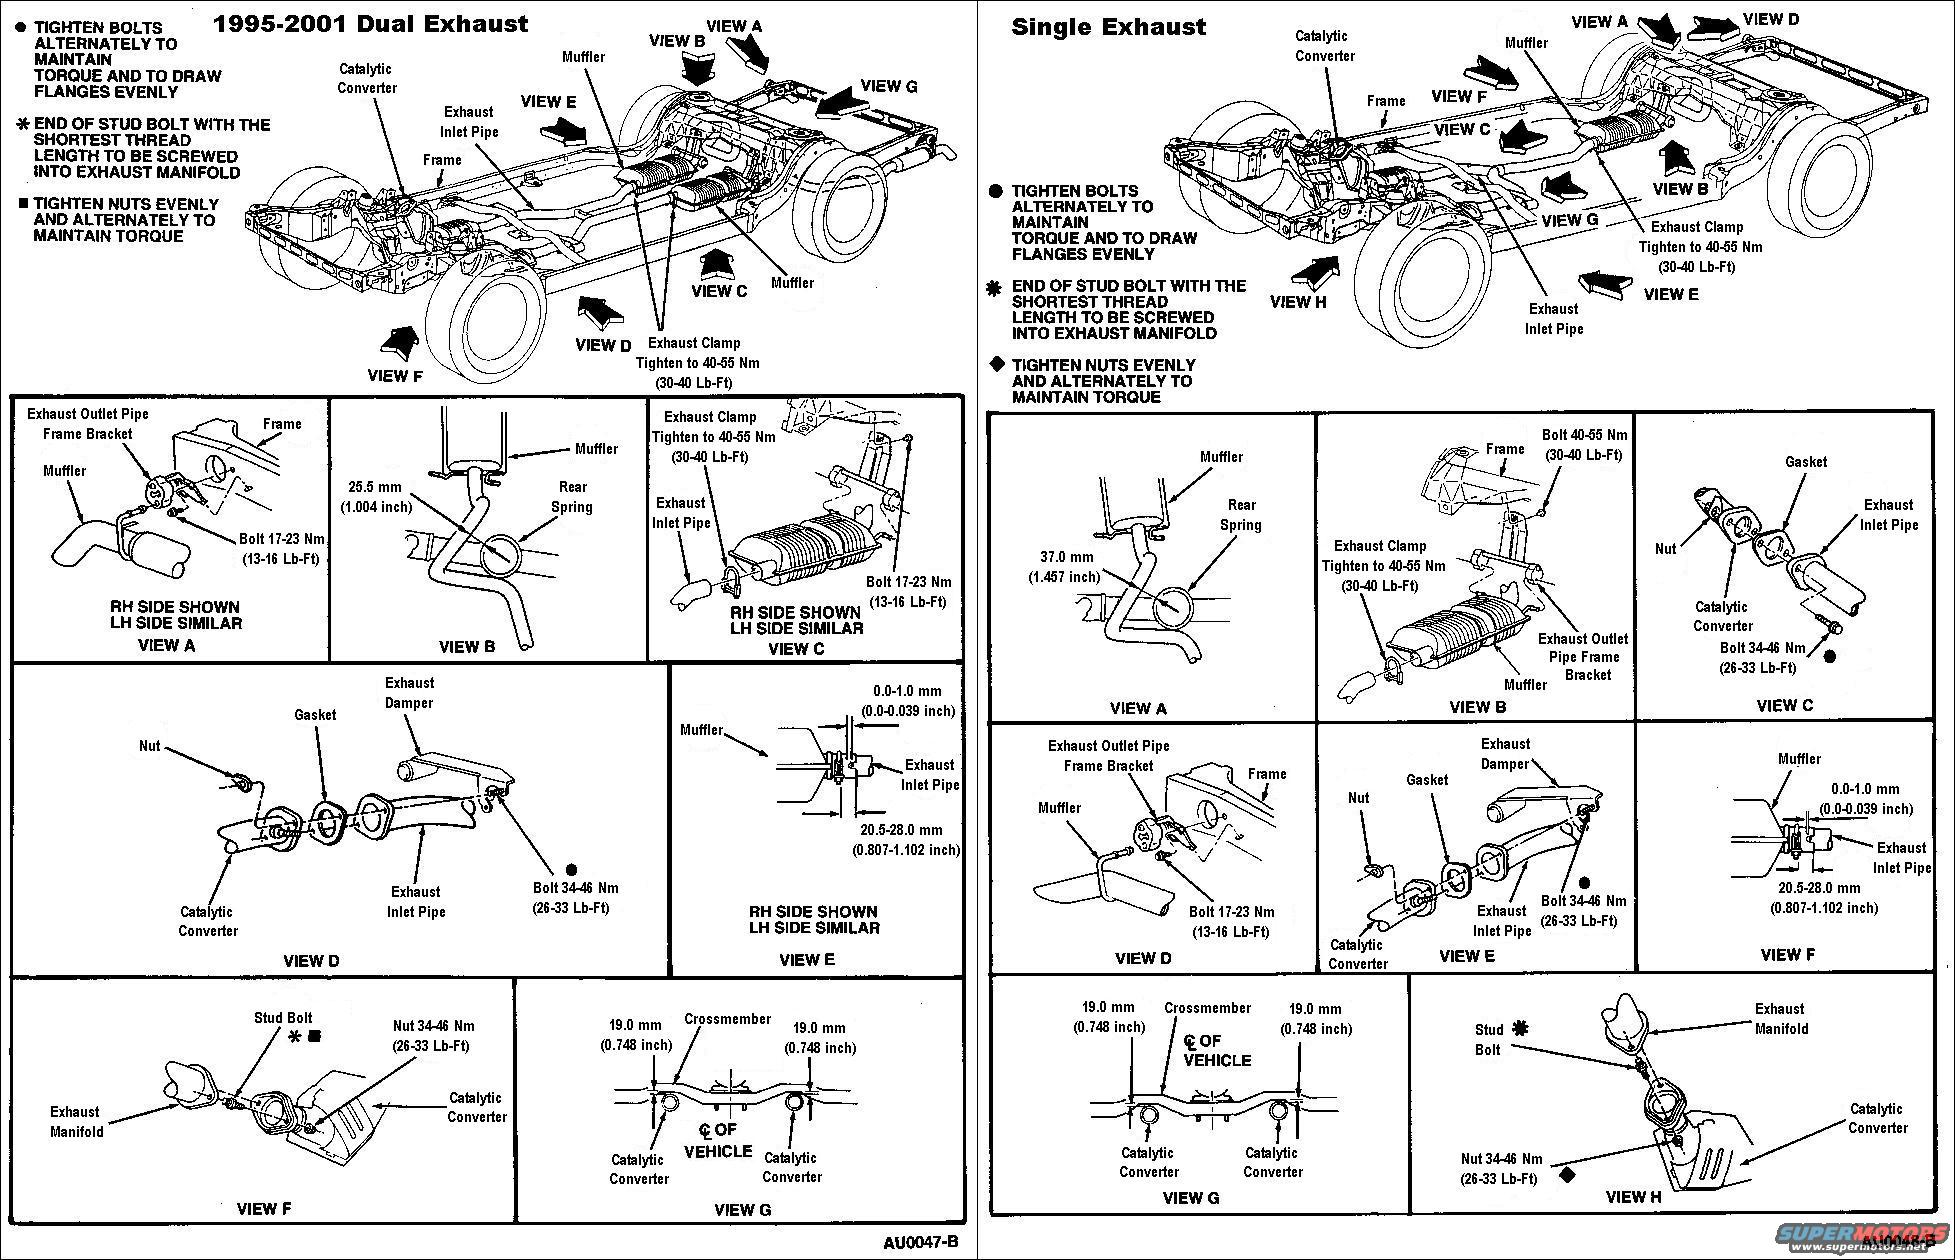 Ford Contour 1999 Ford Contour Repair Cost also RepairGuideContent furthermore 2006 Toyota Rav4 Instrument Panel Relay Location And Layout furthermore 1146228 Updated Replaced Some Stuff Brakes Still Suck in addition Honda Odyssey Gas Tank Location. on 1998 lexus es300 rear suspension parts diagram